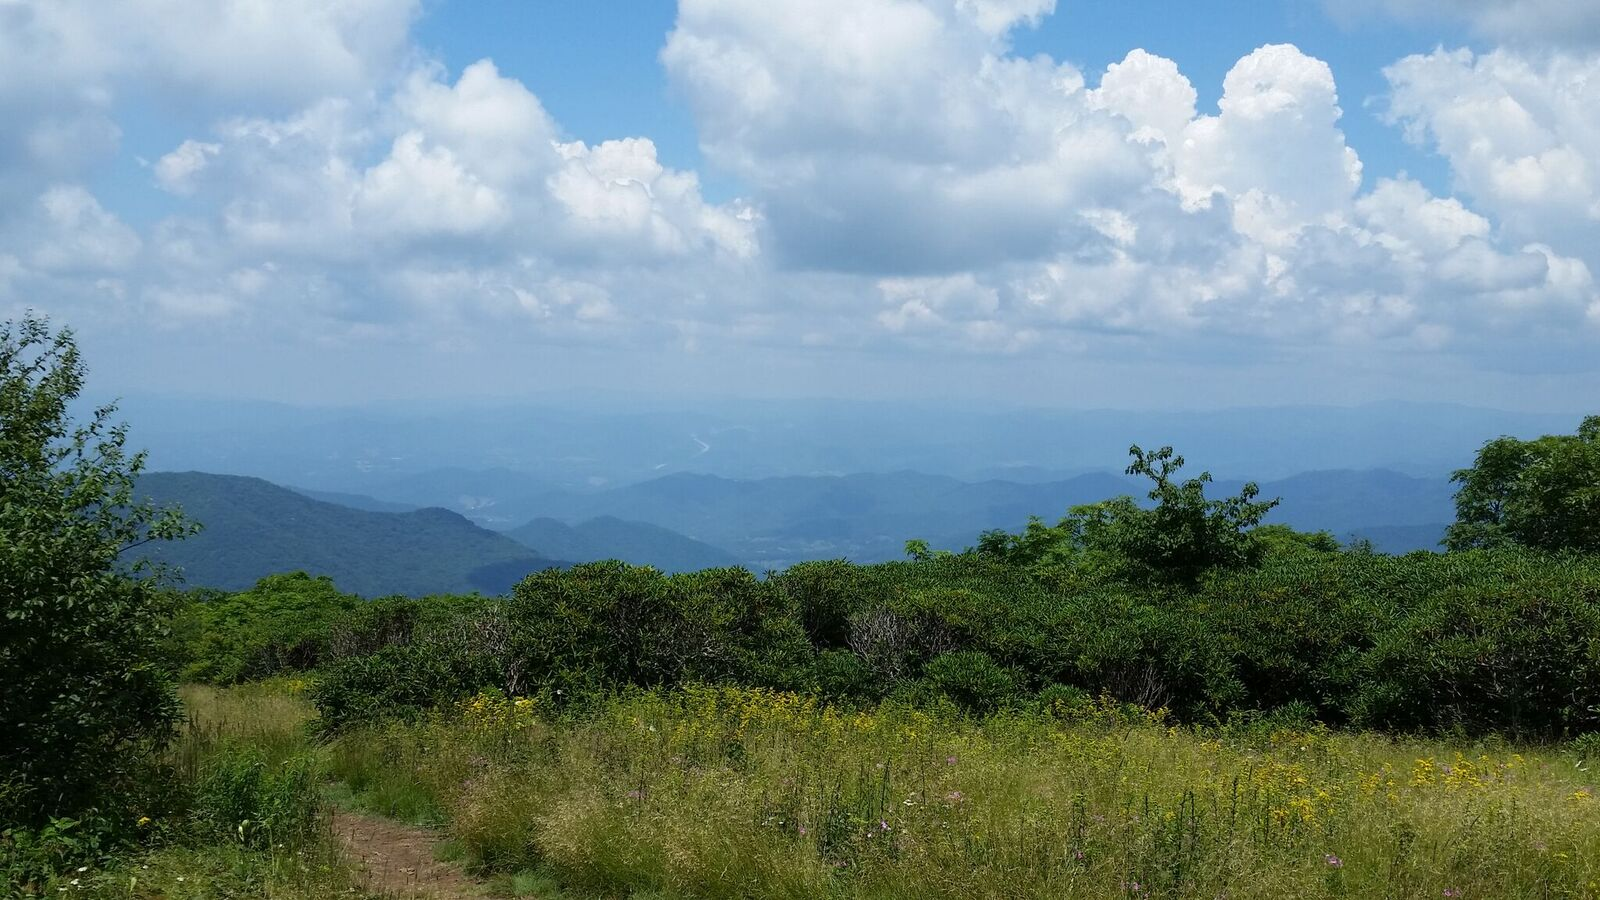 Craggy Gardens Trail. Vacation in Asheville, NC